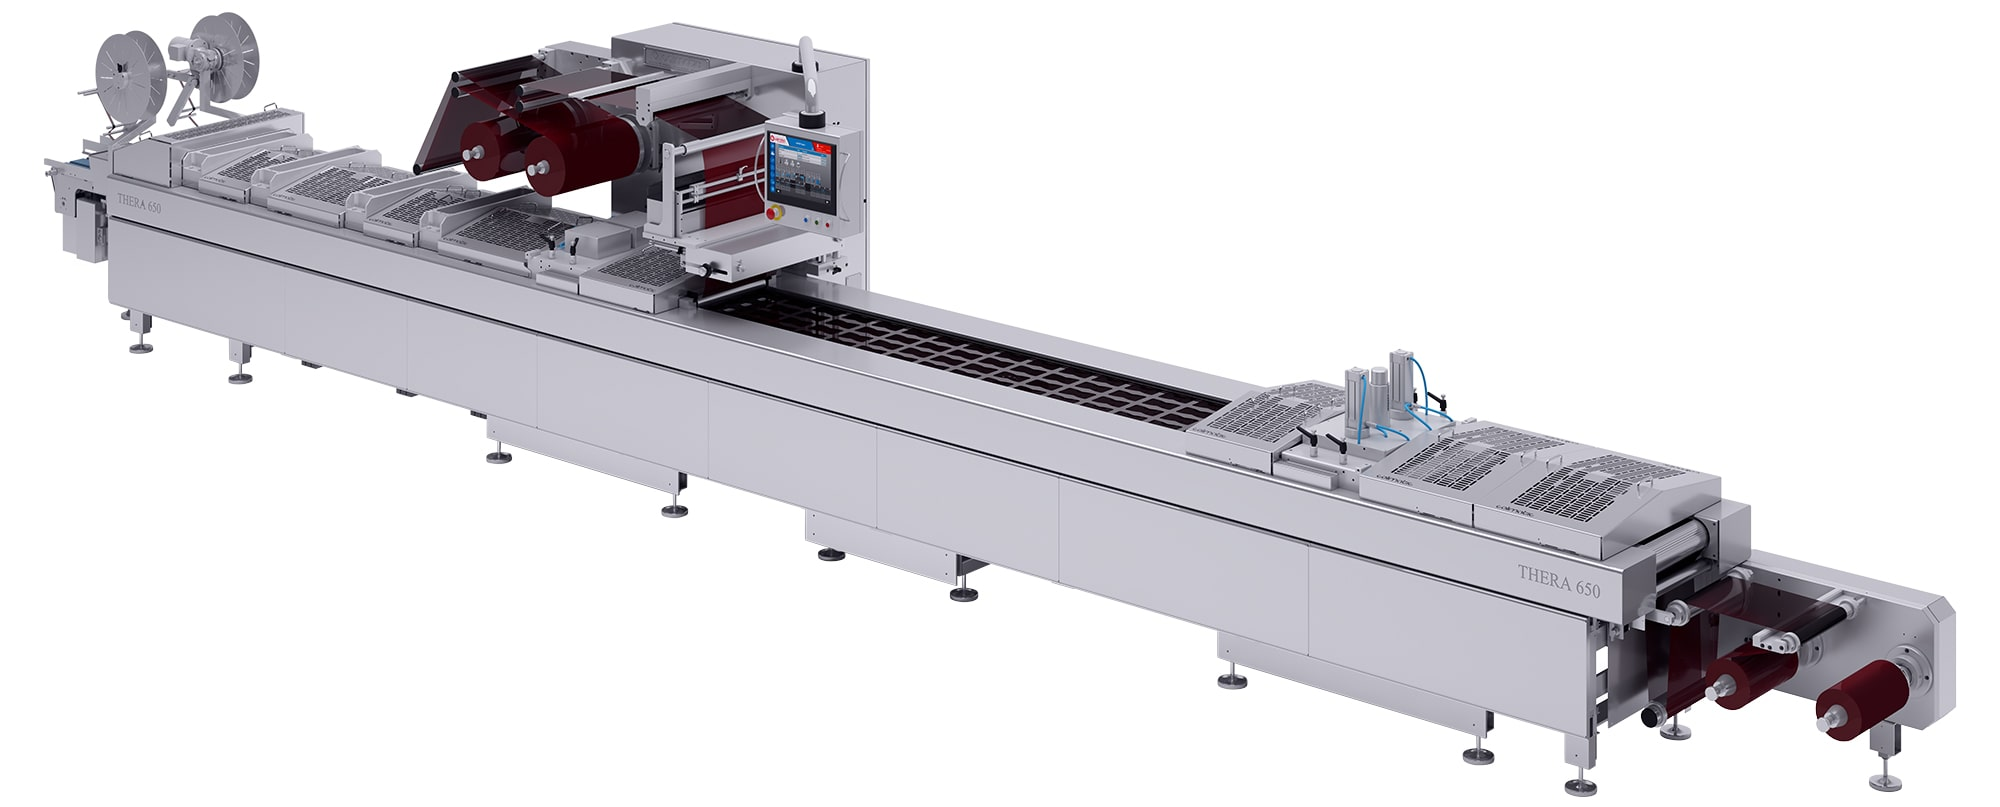 Thermoforming machine 650 - Colimatic thermoforming machines